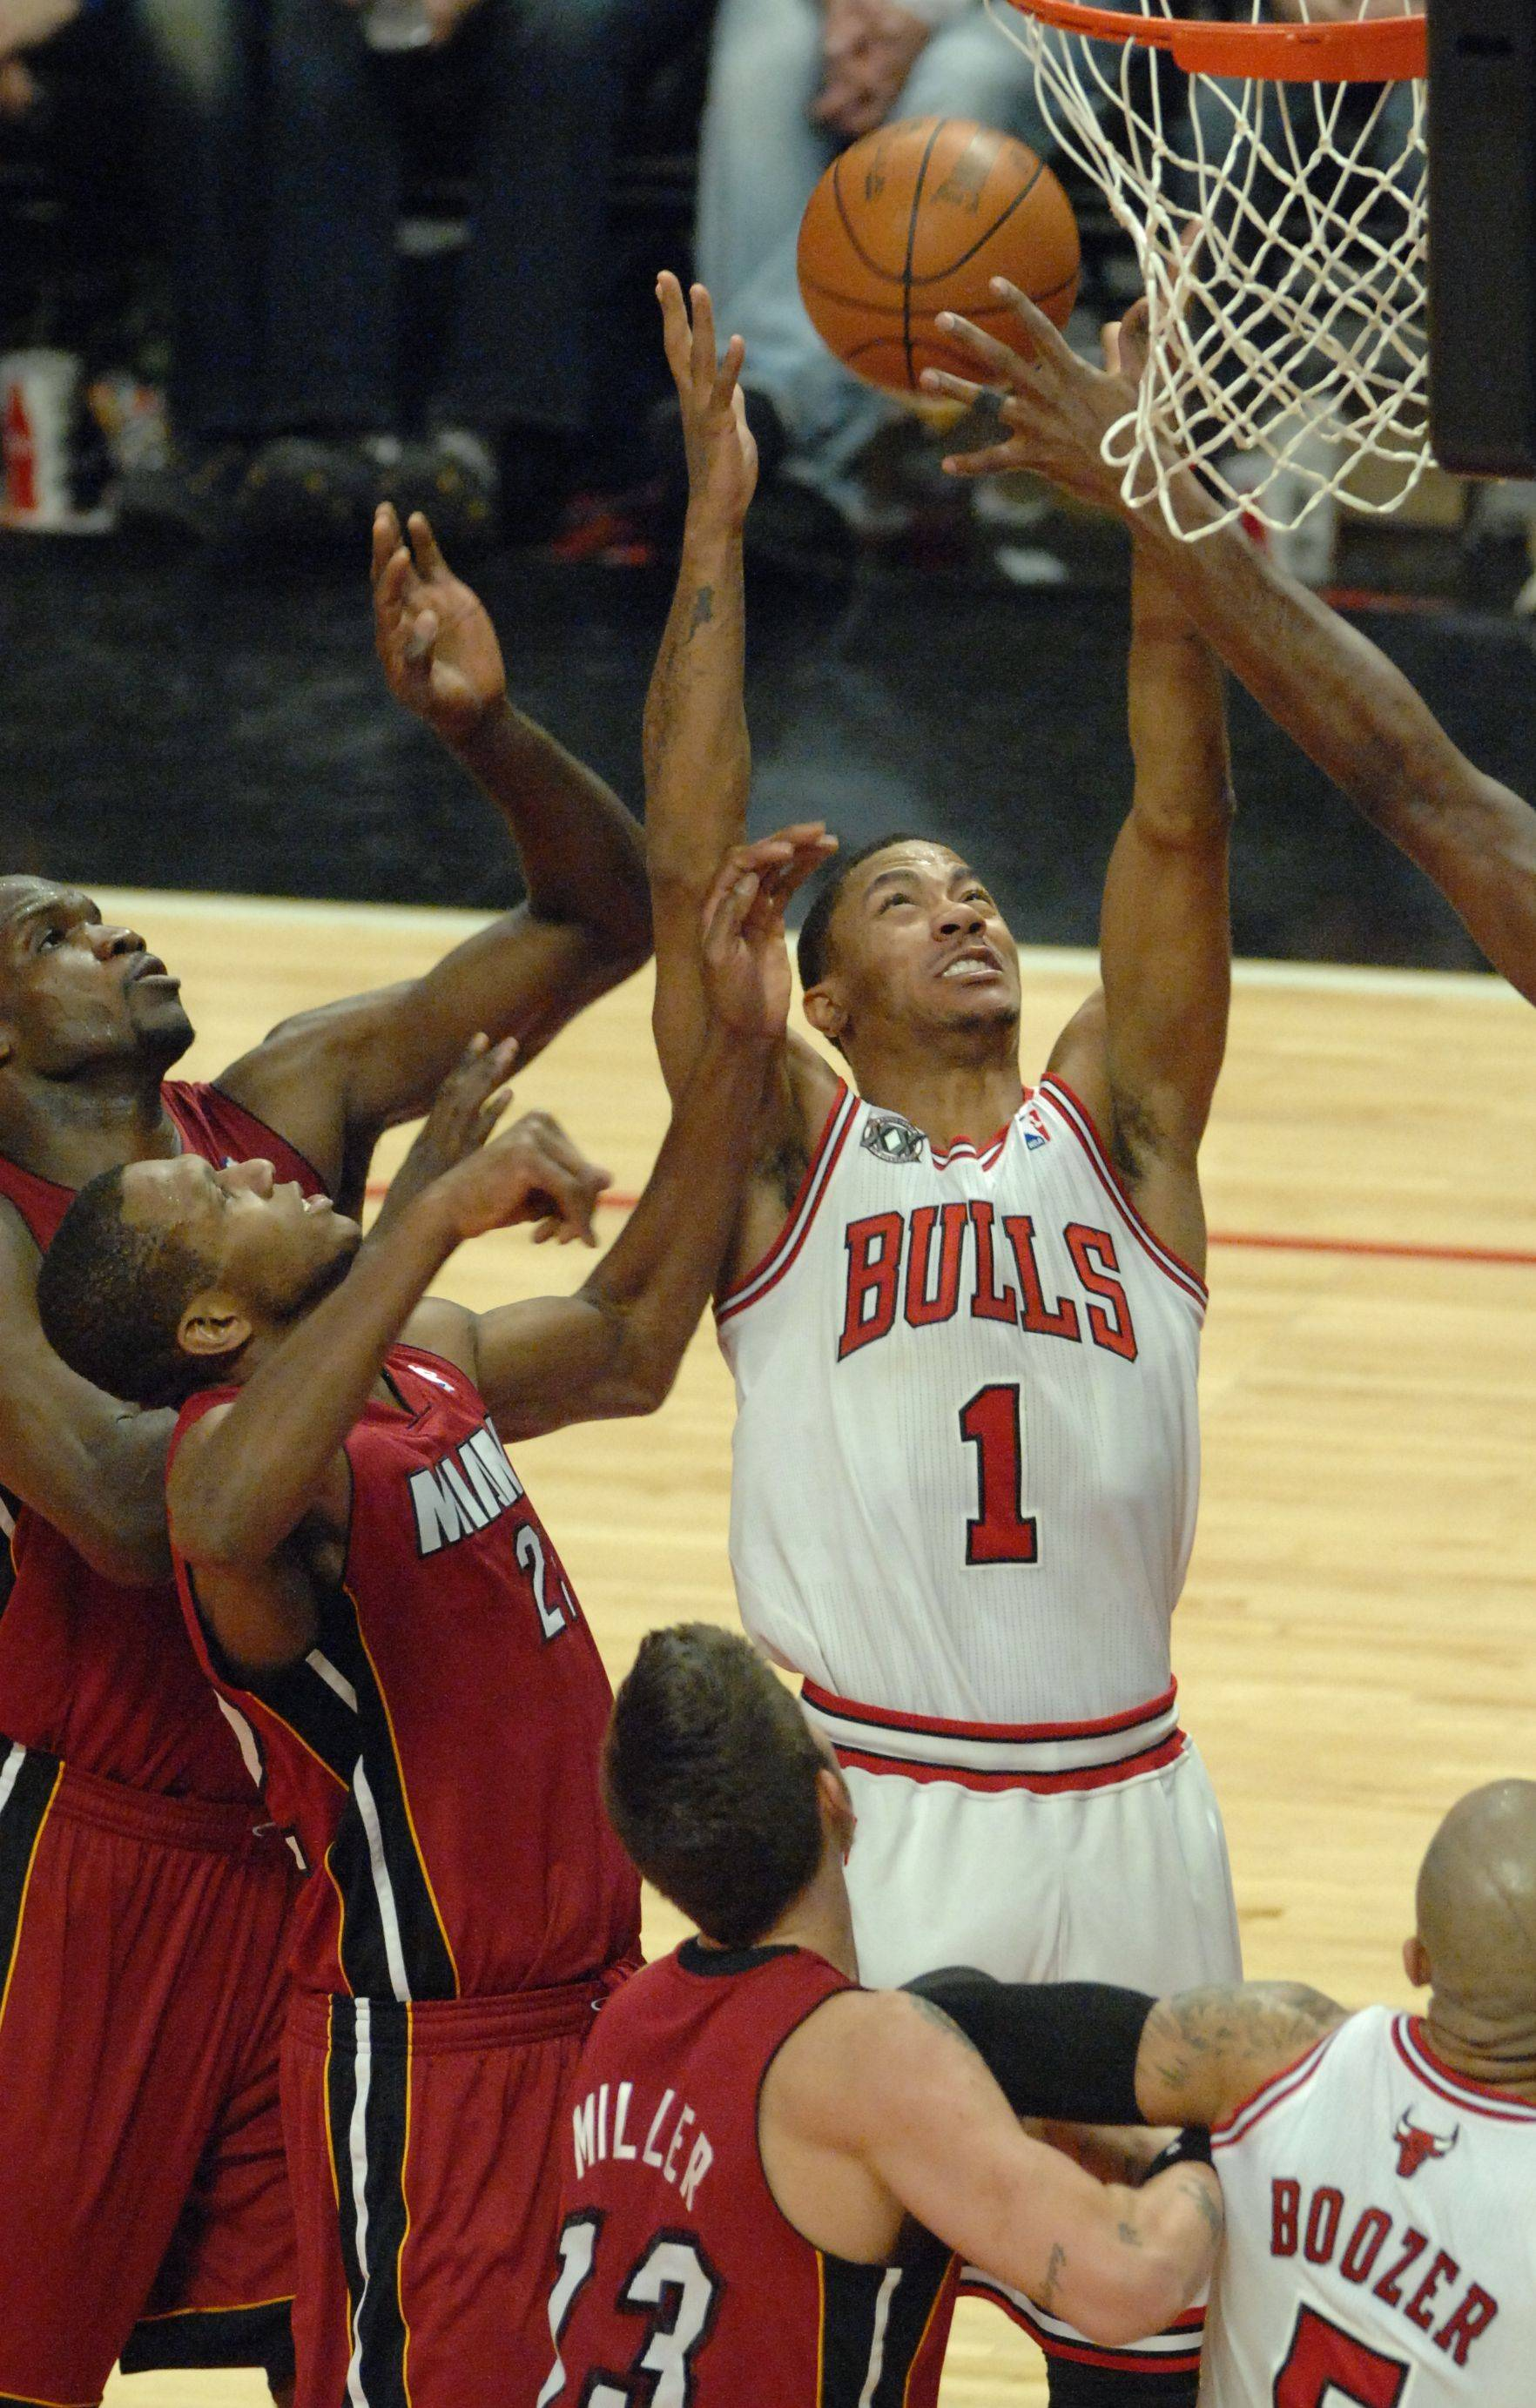 Derrick Rose drives to the basket in the third quarter during Saturday's game at the United Center against the Miami Heat